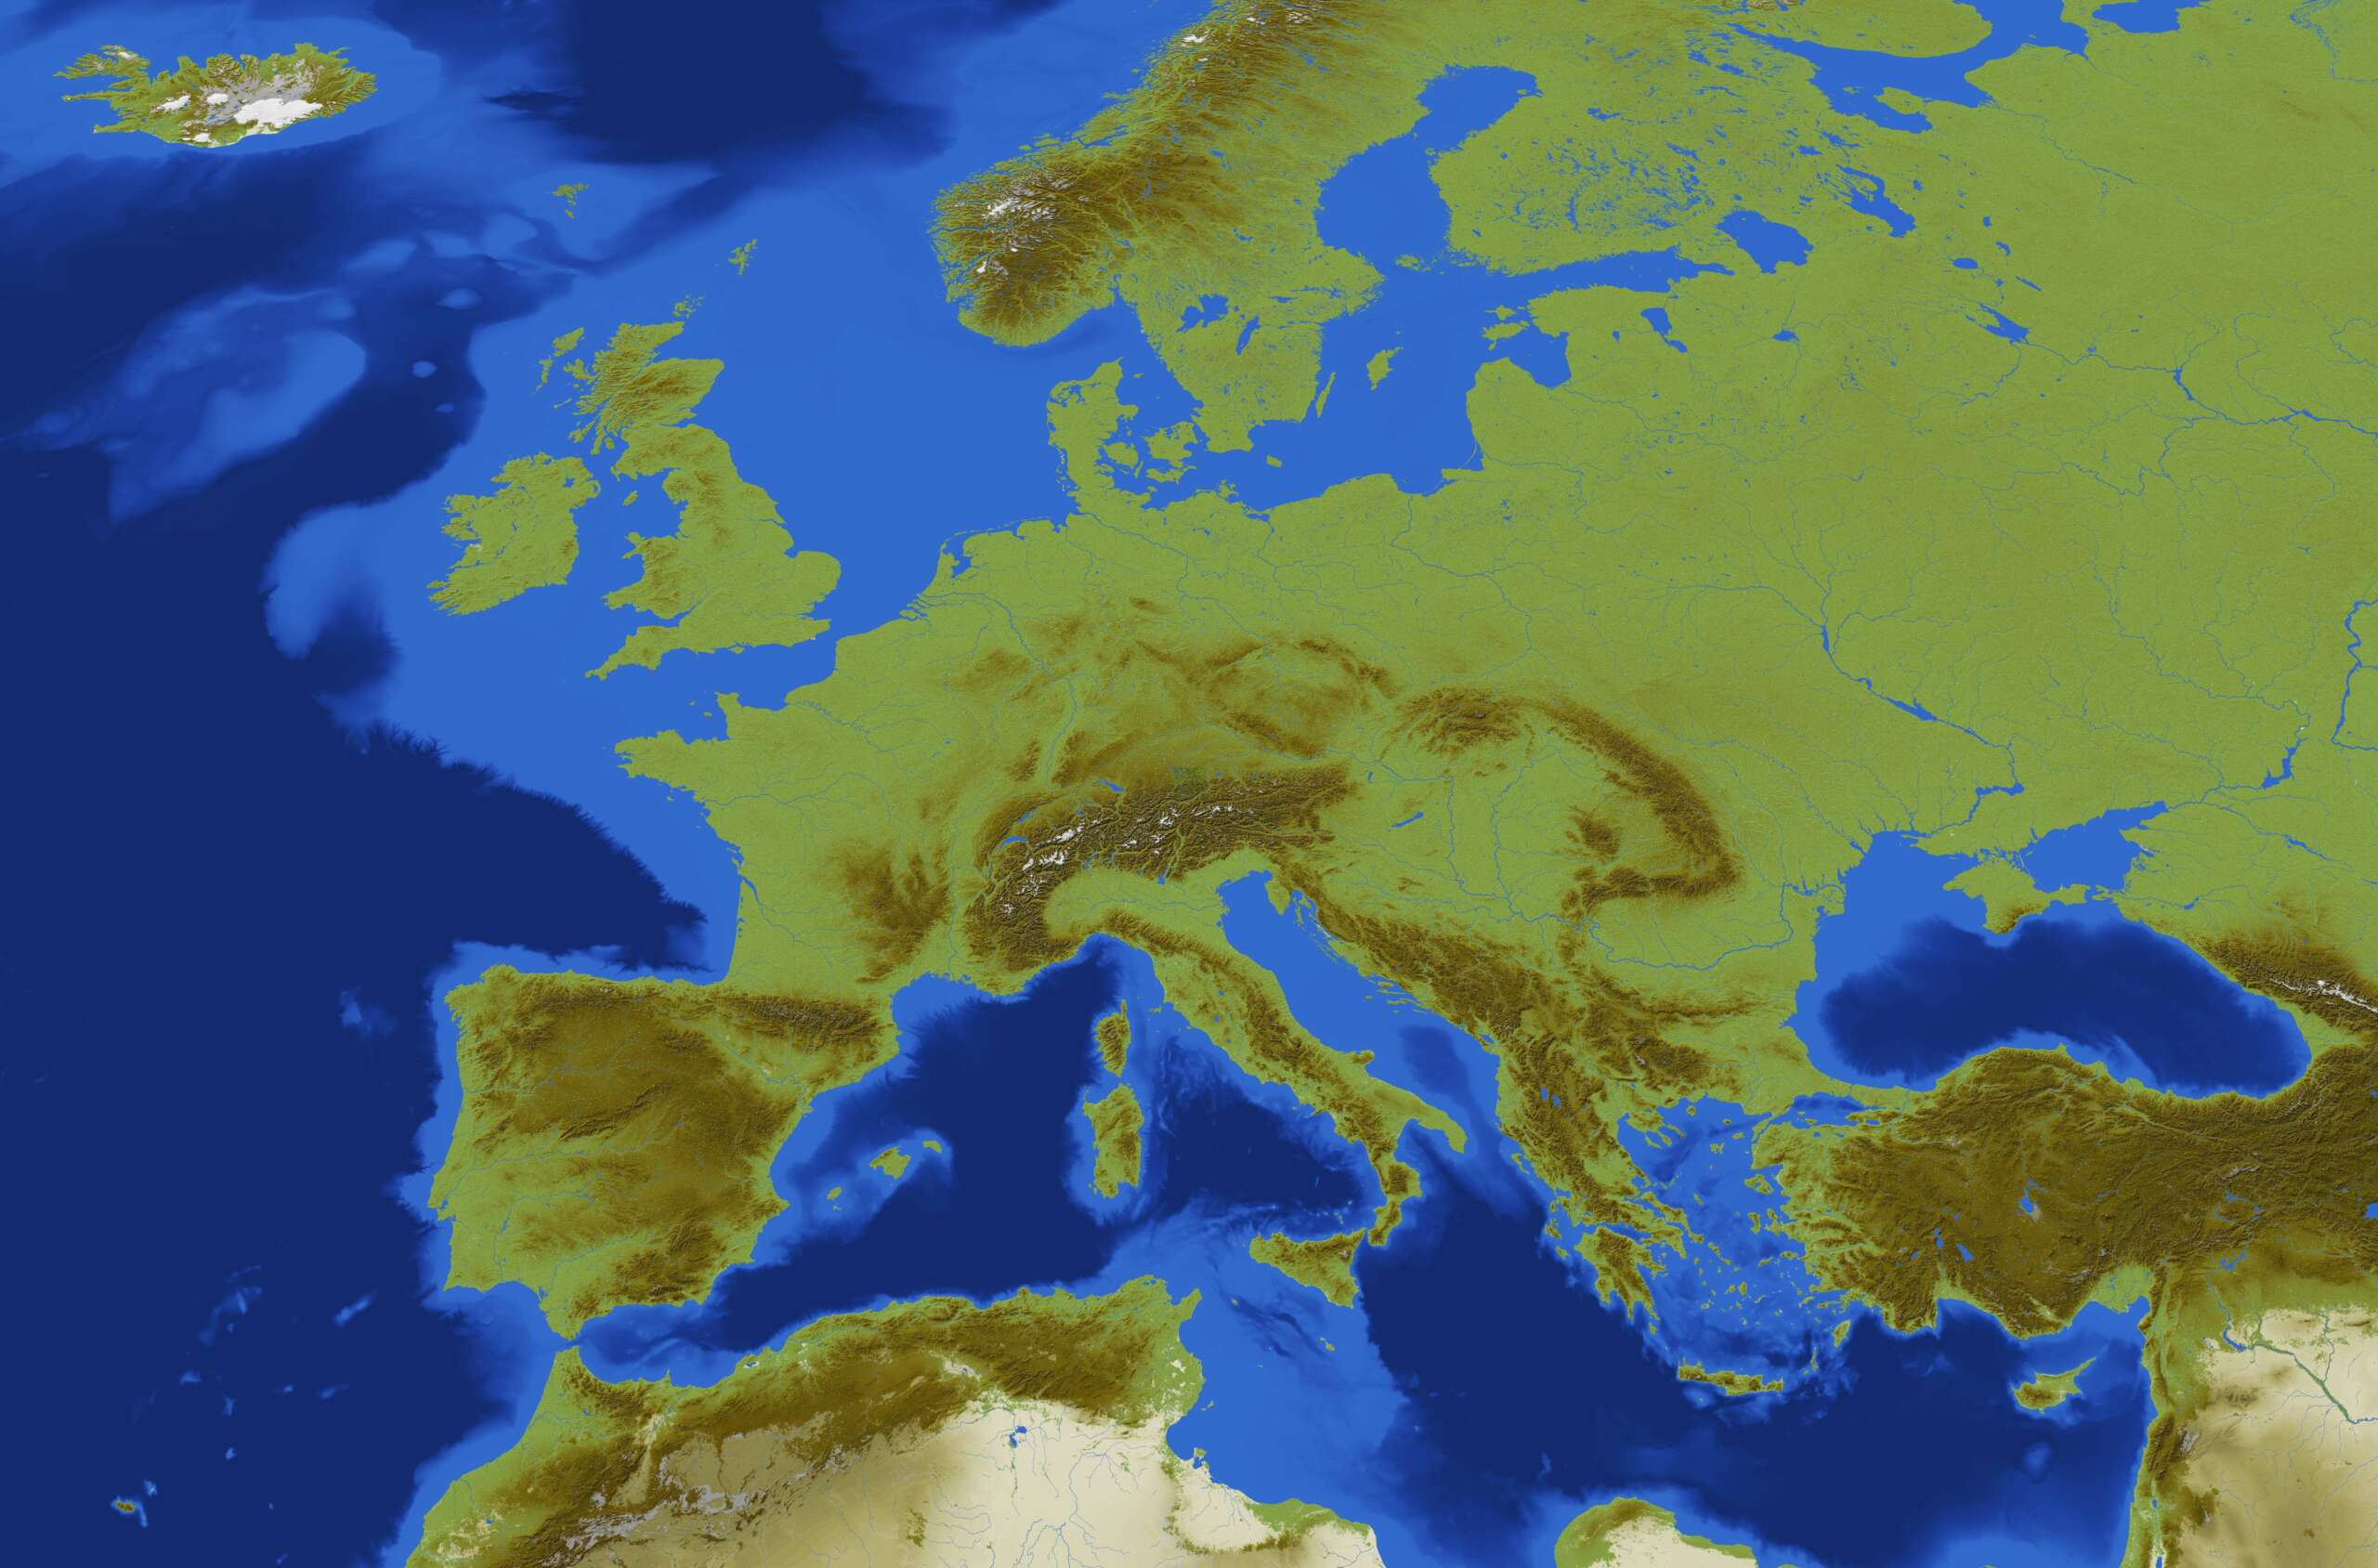 Minecraft Creators Used A Software Called QGIS To Make A Fully Playable Map Of Europe